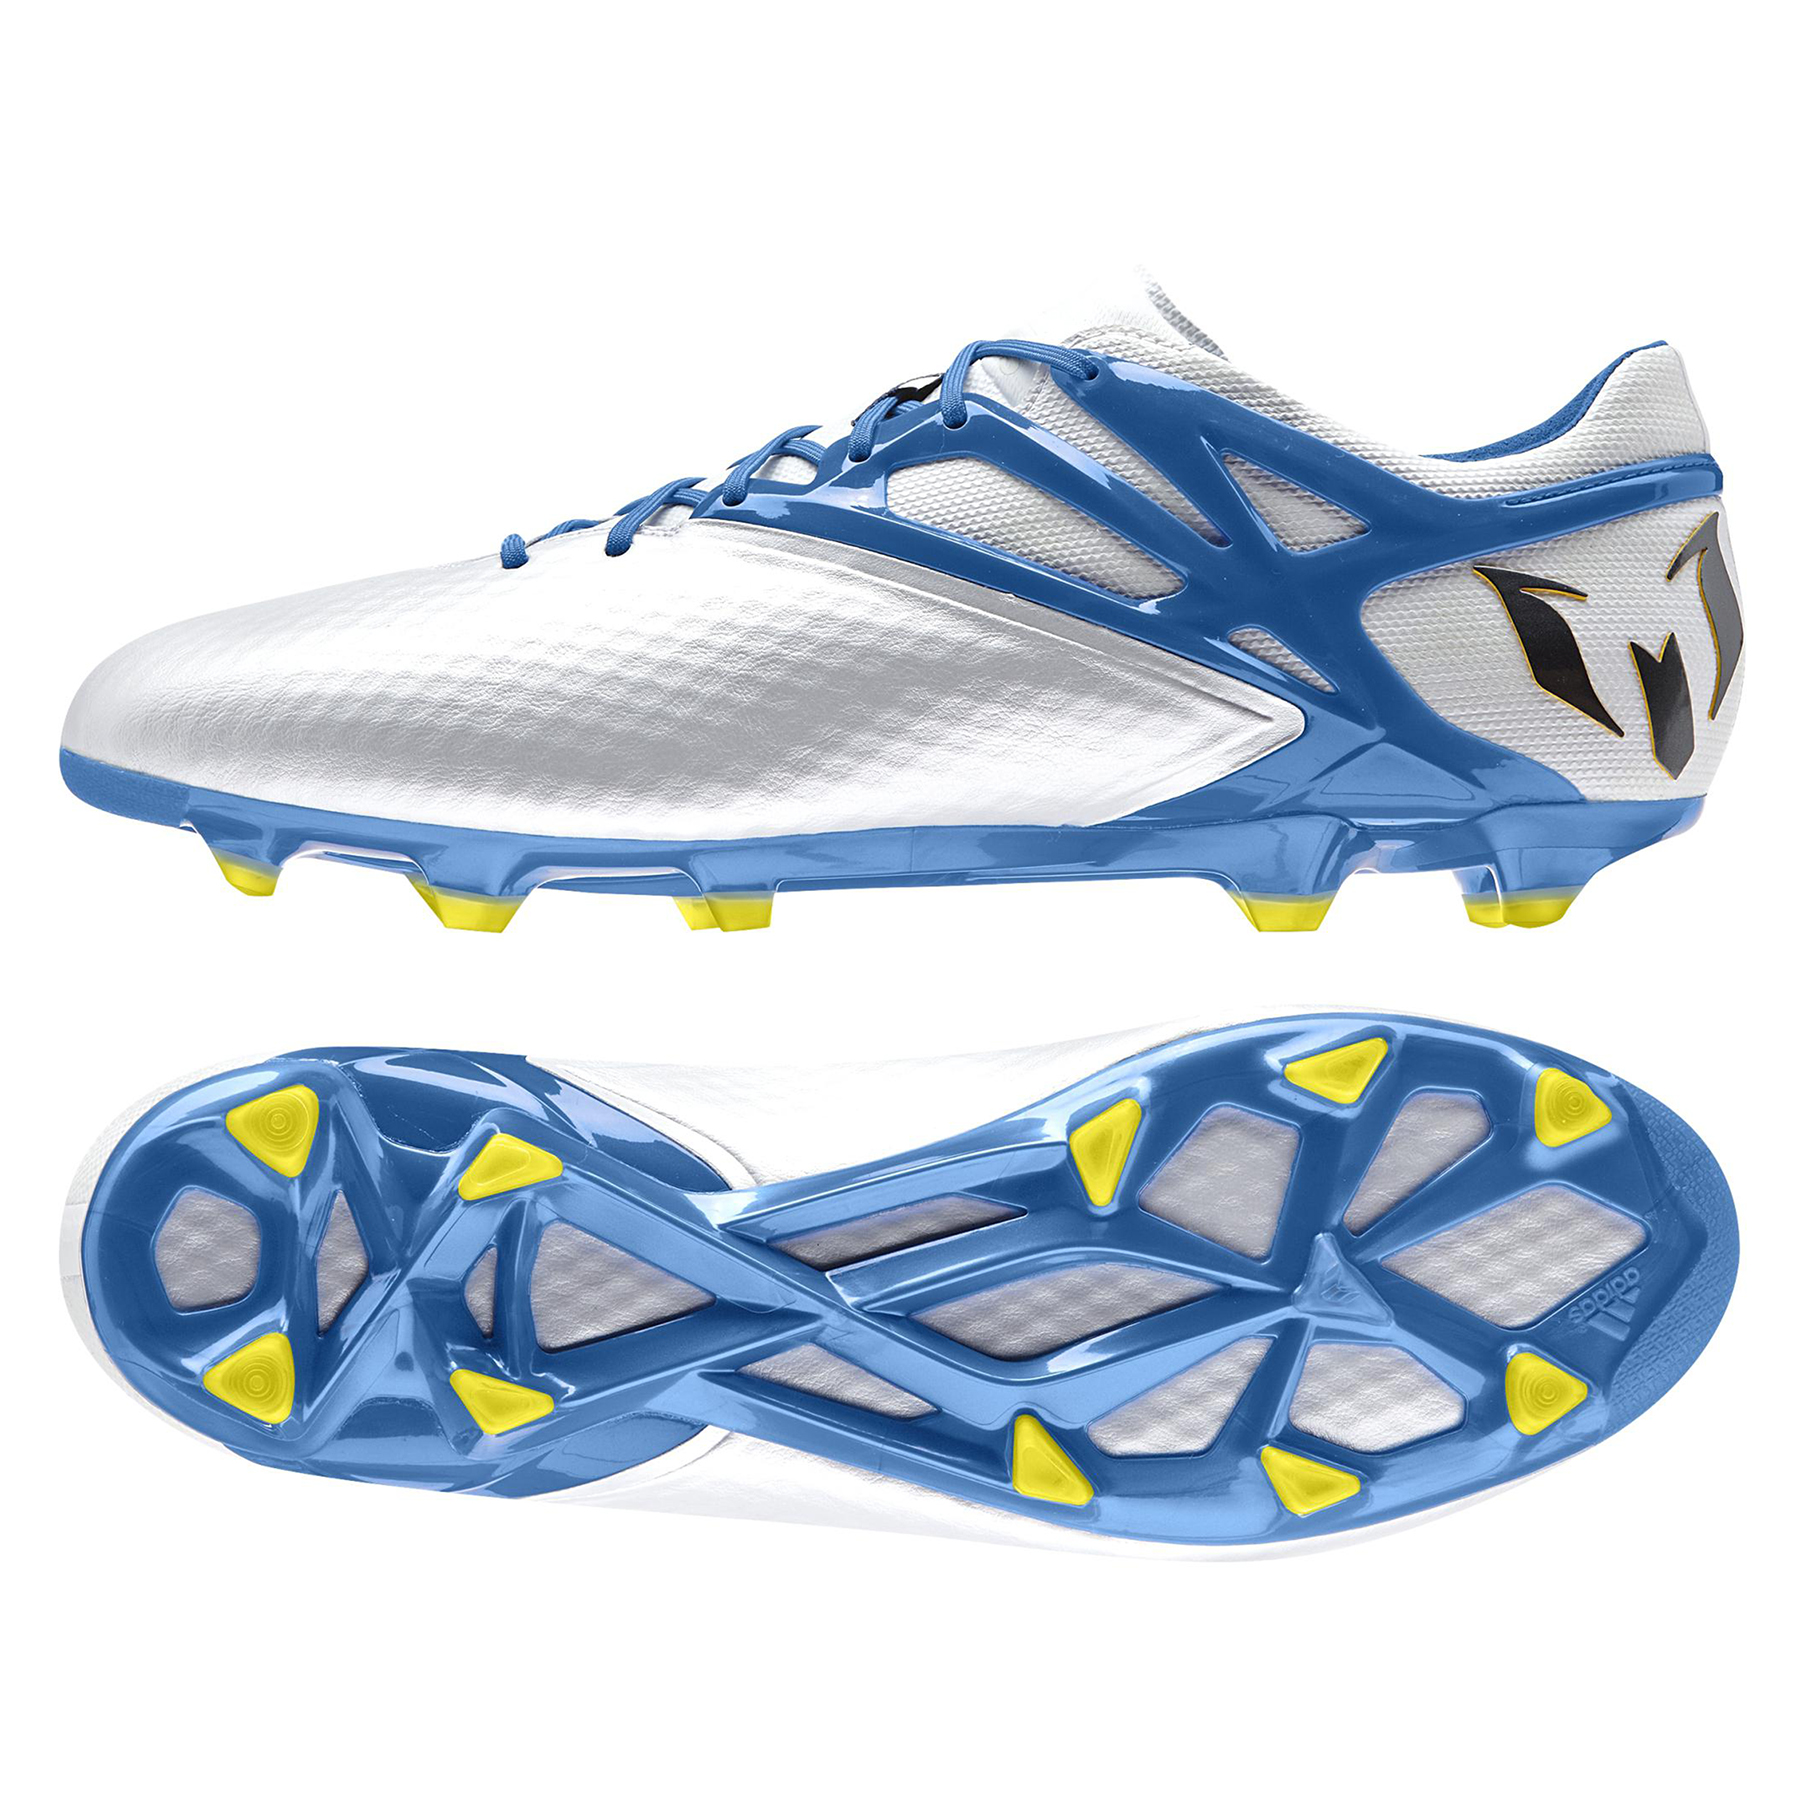 adidas Messi 15.1 Firm Ground Football Boots White